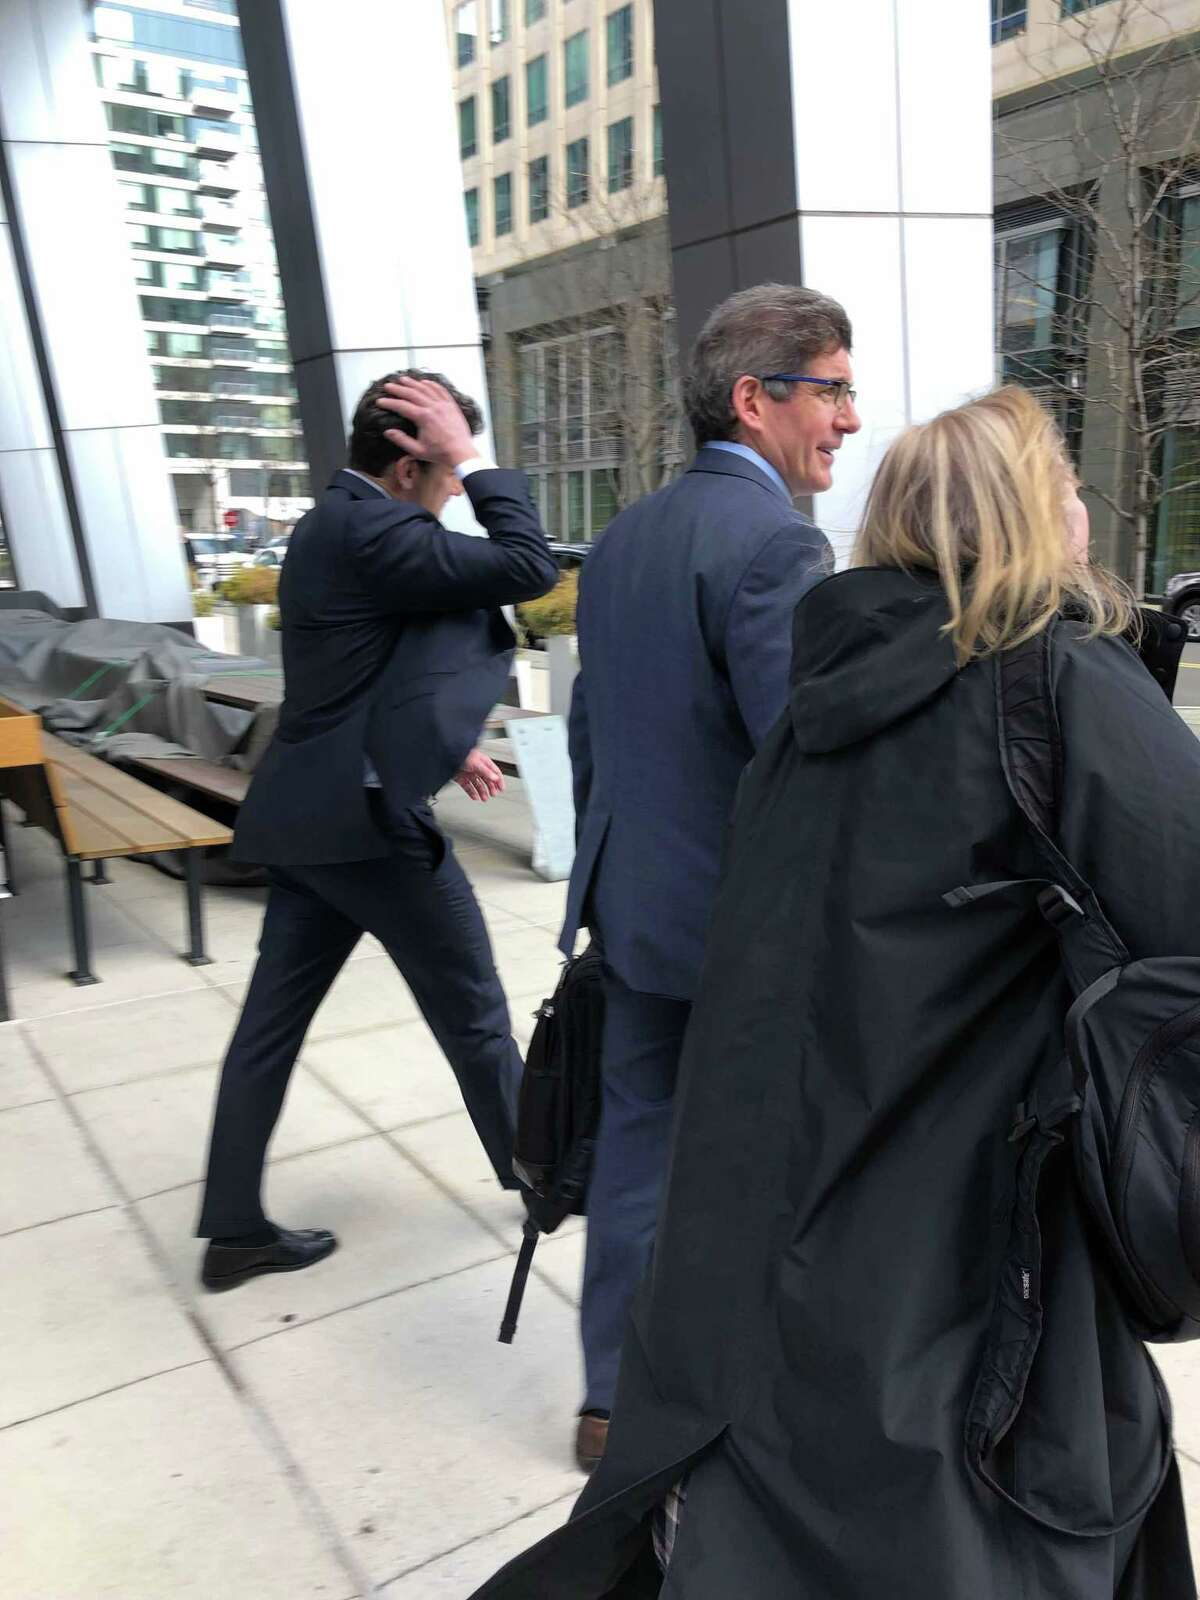 Reporters chase after Gordon Caplan, a Greenwich lawyer, as he leaves the courthouse in Boston on Wednesday with his attorney, Joshua Levy, a formal federal prosecutor in Massachusetts.